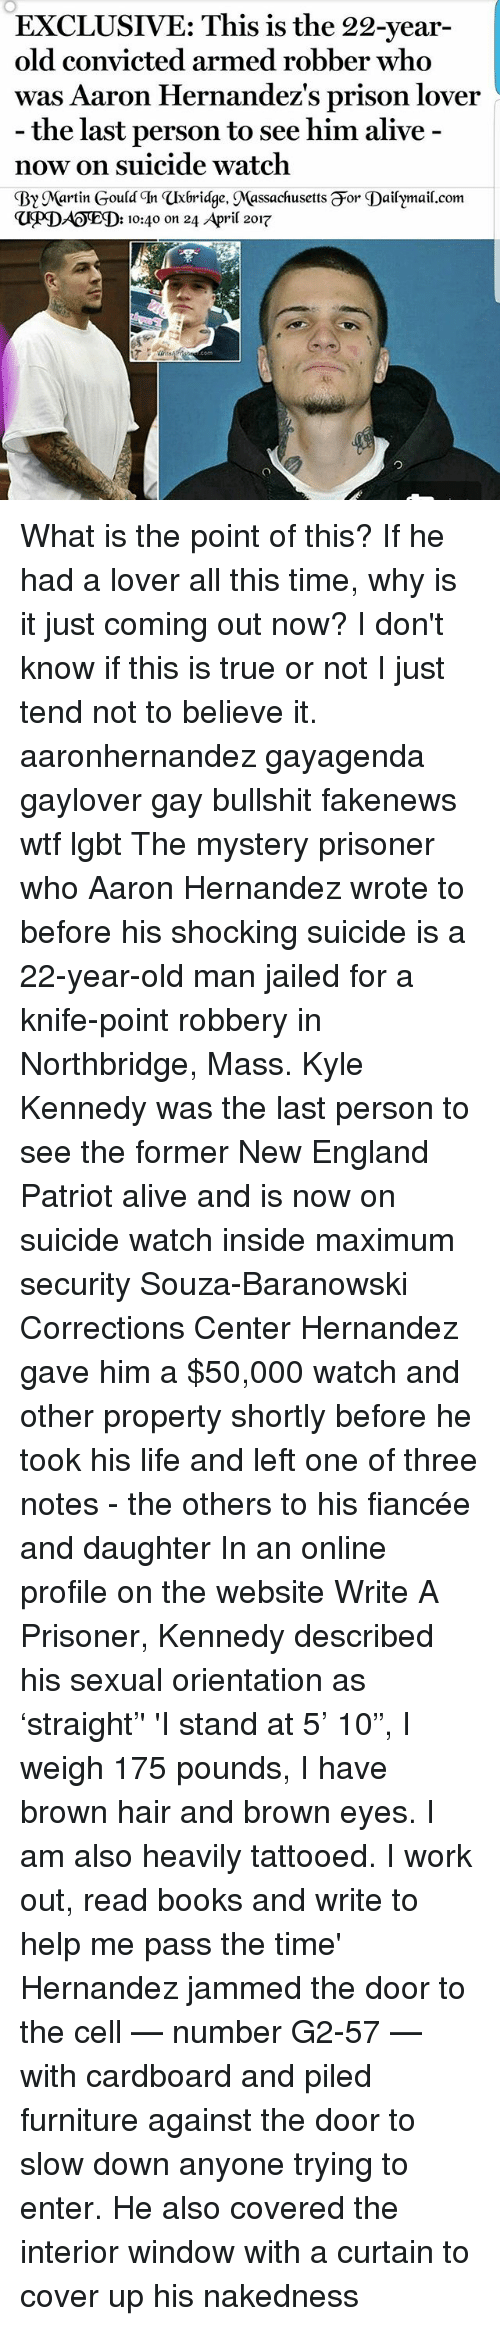 "New England Patriot: EXCLUSIVE: This is the 22-year-  old convicted armed robber who  was Aaron Hernandez's prison lover  the last person to see him alive  now on suicide watch  By artin Gould qn axbridge, Massachusetts Gor Dailymail.com  D: 10:40 on 24 April 2017 What is the point of this? If he had a lover all this time, why is it just coming out now? I don't know if this is true or not I just tend not to believe it. aaronhernandez gayagenda gaylover gay bullshit fakenews wtf lgbt The mystery prisoner who Aaron Hernandez wrote to before his shocking suicide is a 22-year-old man jailed for a knife-point robbery in Northbridge, Mass. Kyle Kennedy was the last person to see the former New England Patriot alive and is now on suicide watch inside maximum security Souza-Baranowski Corrections Center Hernandez gave him a $50,000 watch and other property shortly before he took his life and left one of three notes - the others to his fiancée and daughter In an online profile on the website Write A Prisoner, Kennedy described his sexual orientation as 'straight'' 'I stand at 5' 10"", I weigh 175 pounds, I have brown hair and brown eyes. I am also heavily tattooed. I work out, read books and write to help me pass the time' Hernandez jammed the door to the cell — number G2-57 — with cardboard and piled furniture against the door to slow down anyone trying to enter. He also covered the interior window with a curtain to cover up his nakedness"